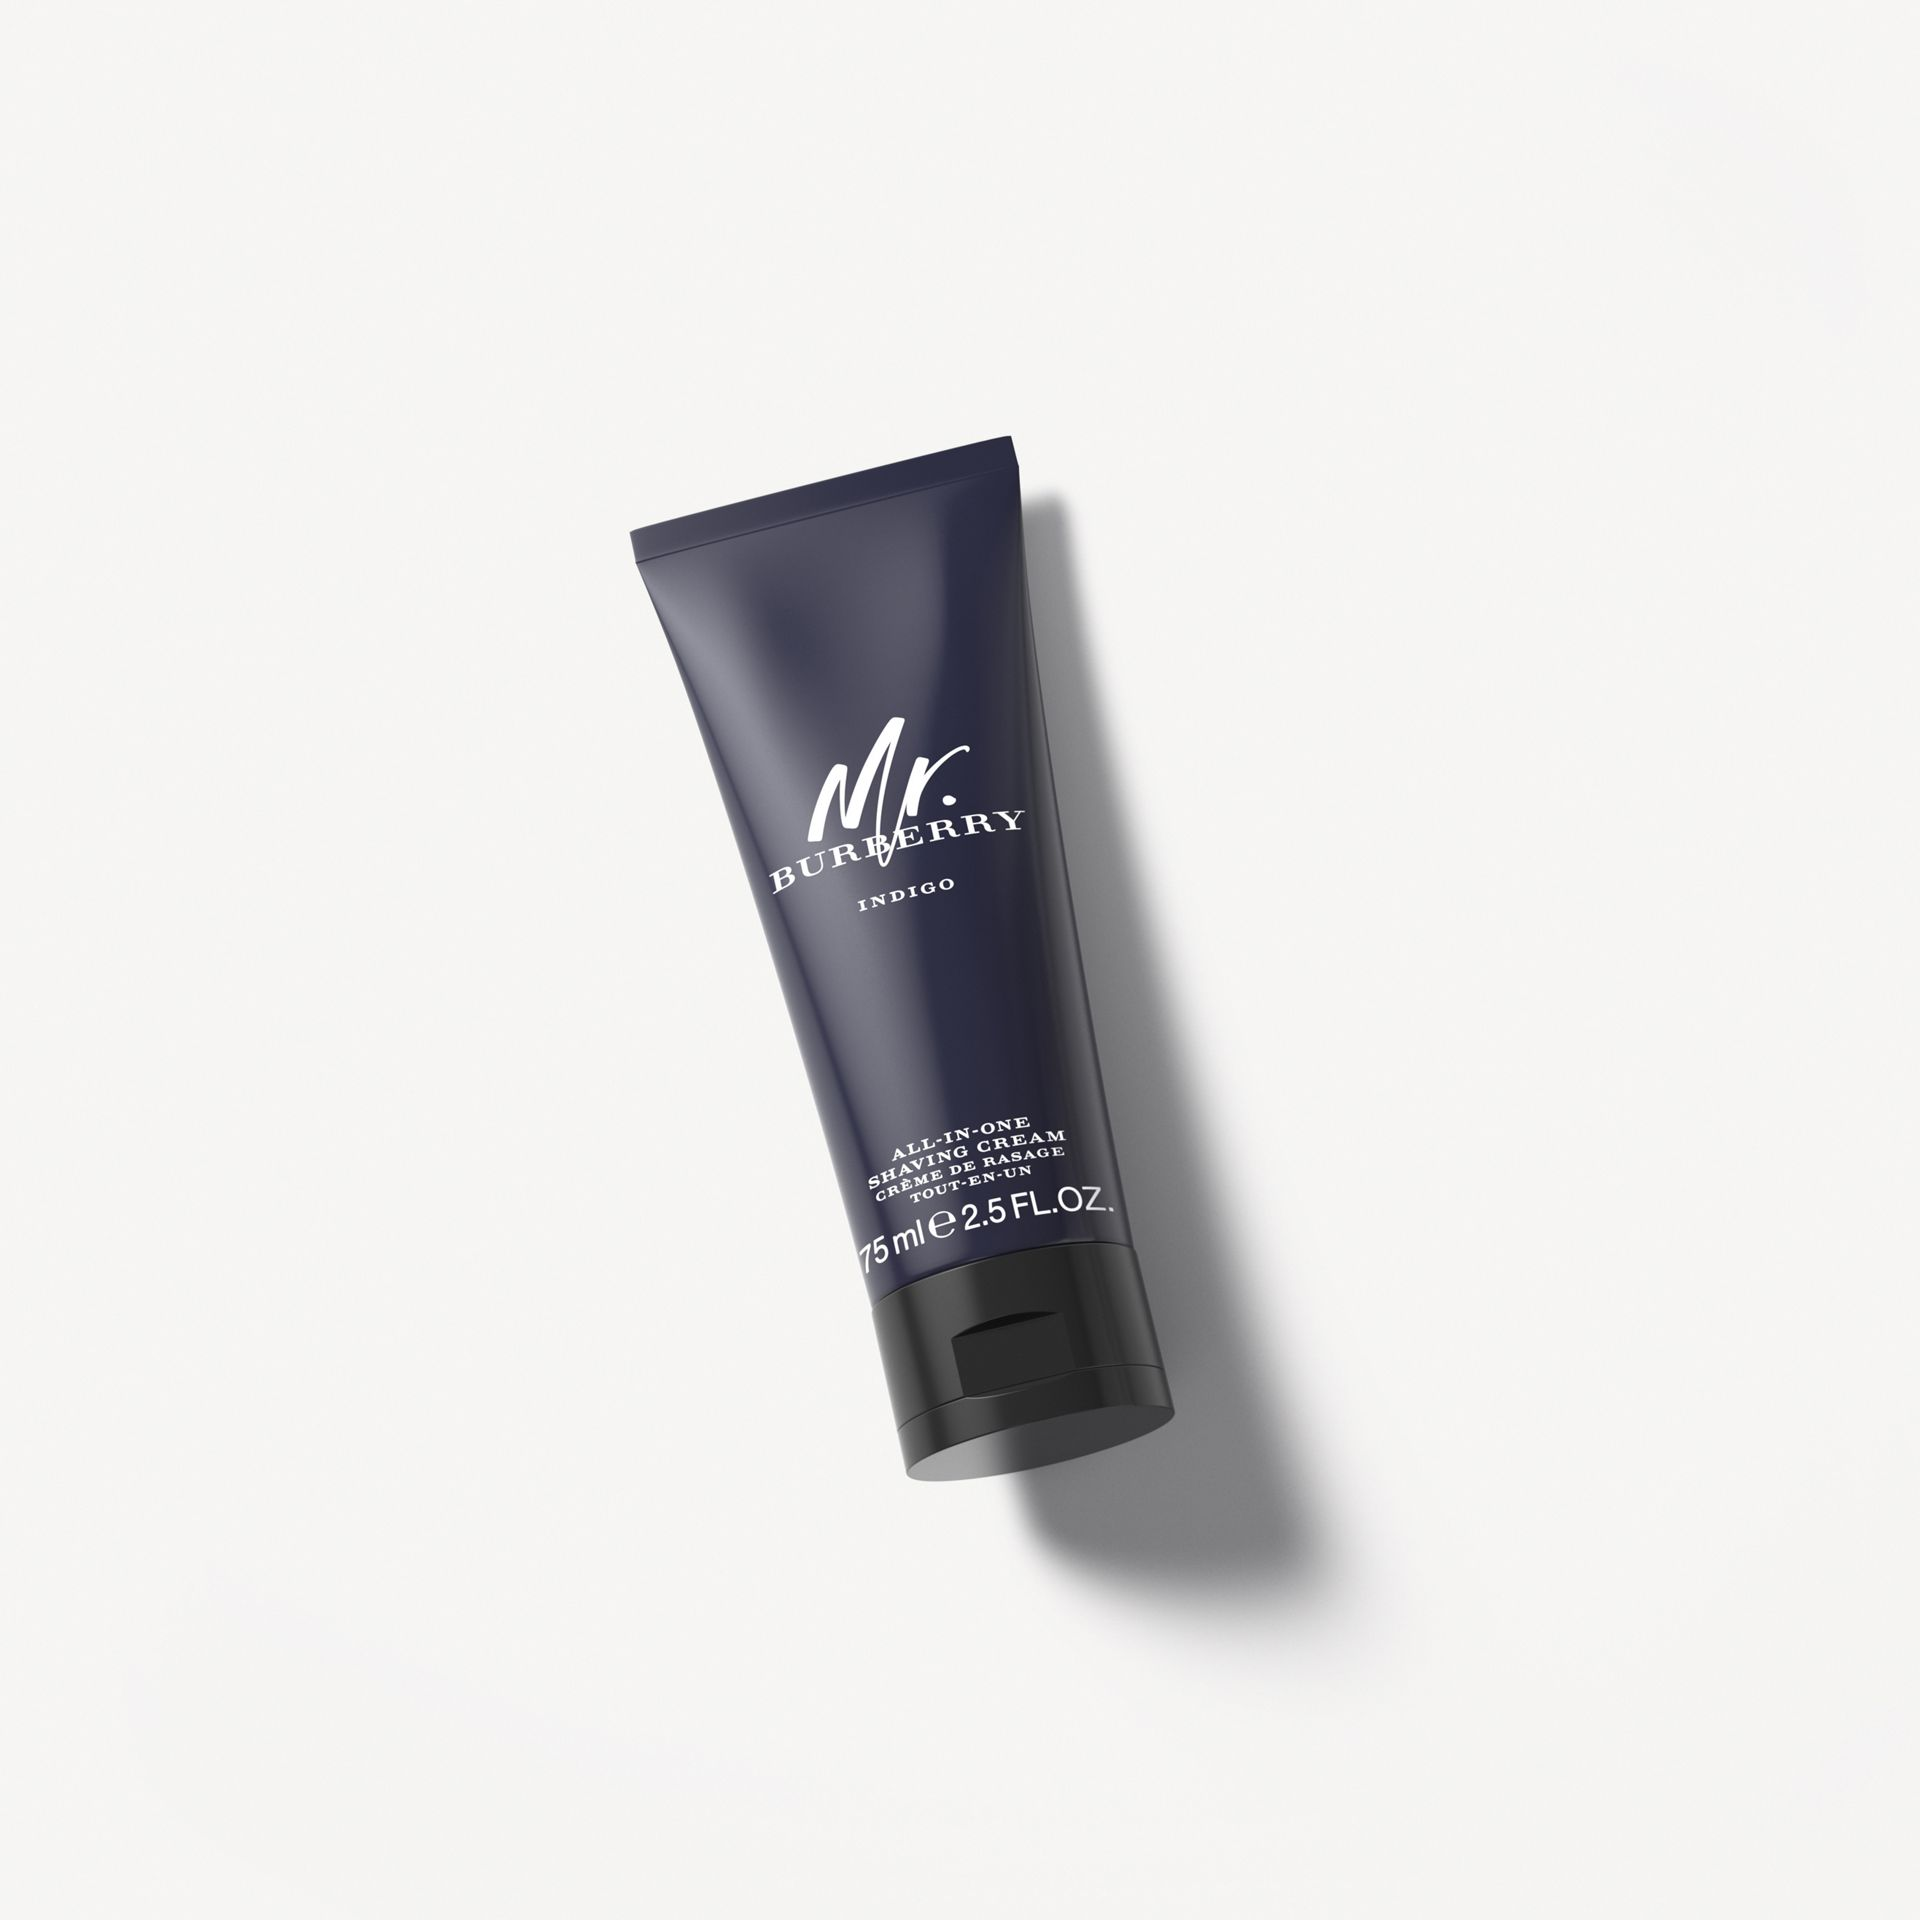 Crème de rasage tout-en-un Mr. Burberry Indigo 75 ml - Homme | Burberry - photo de la galerie 0